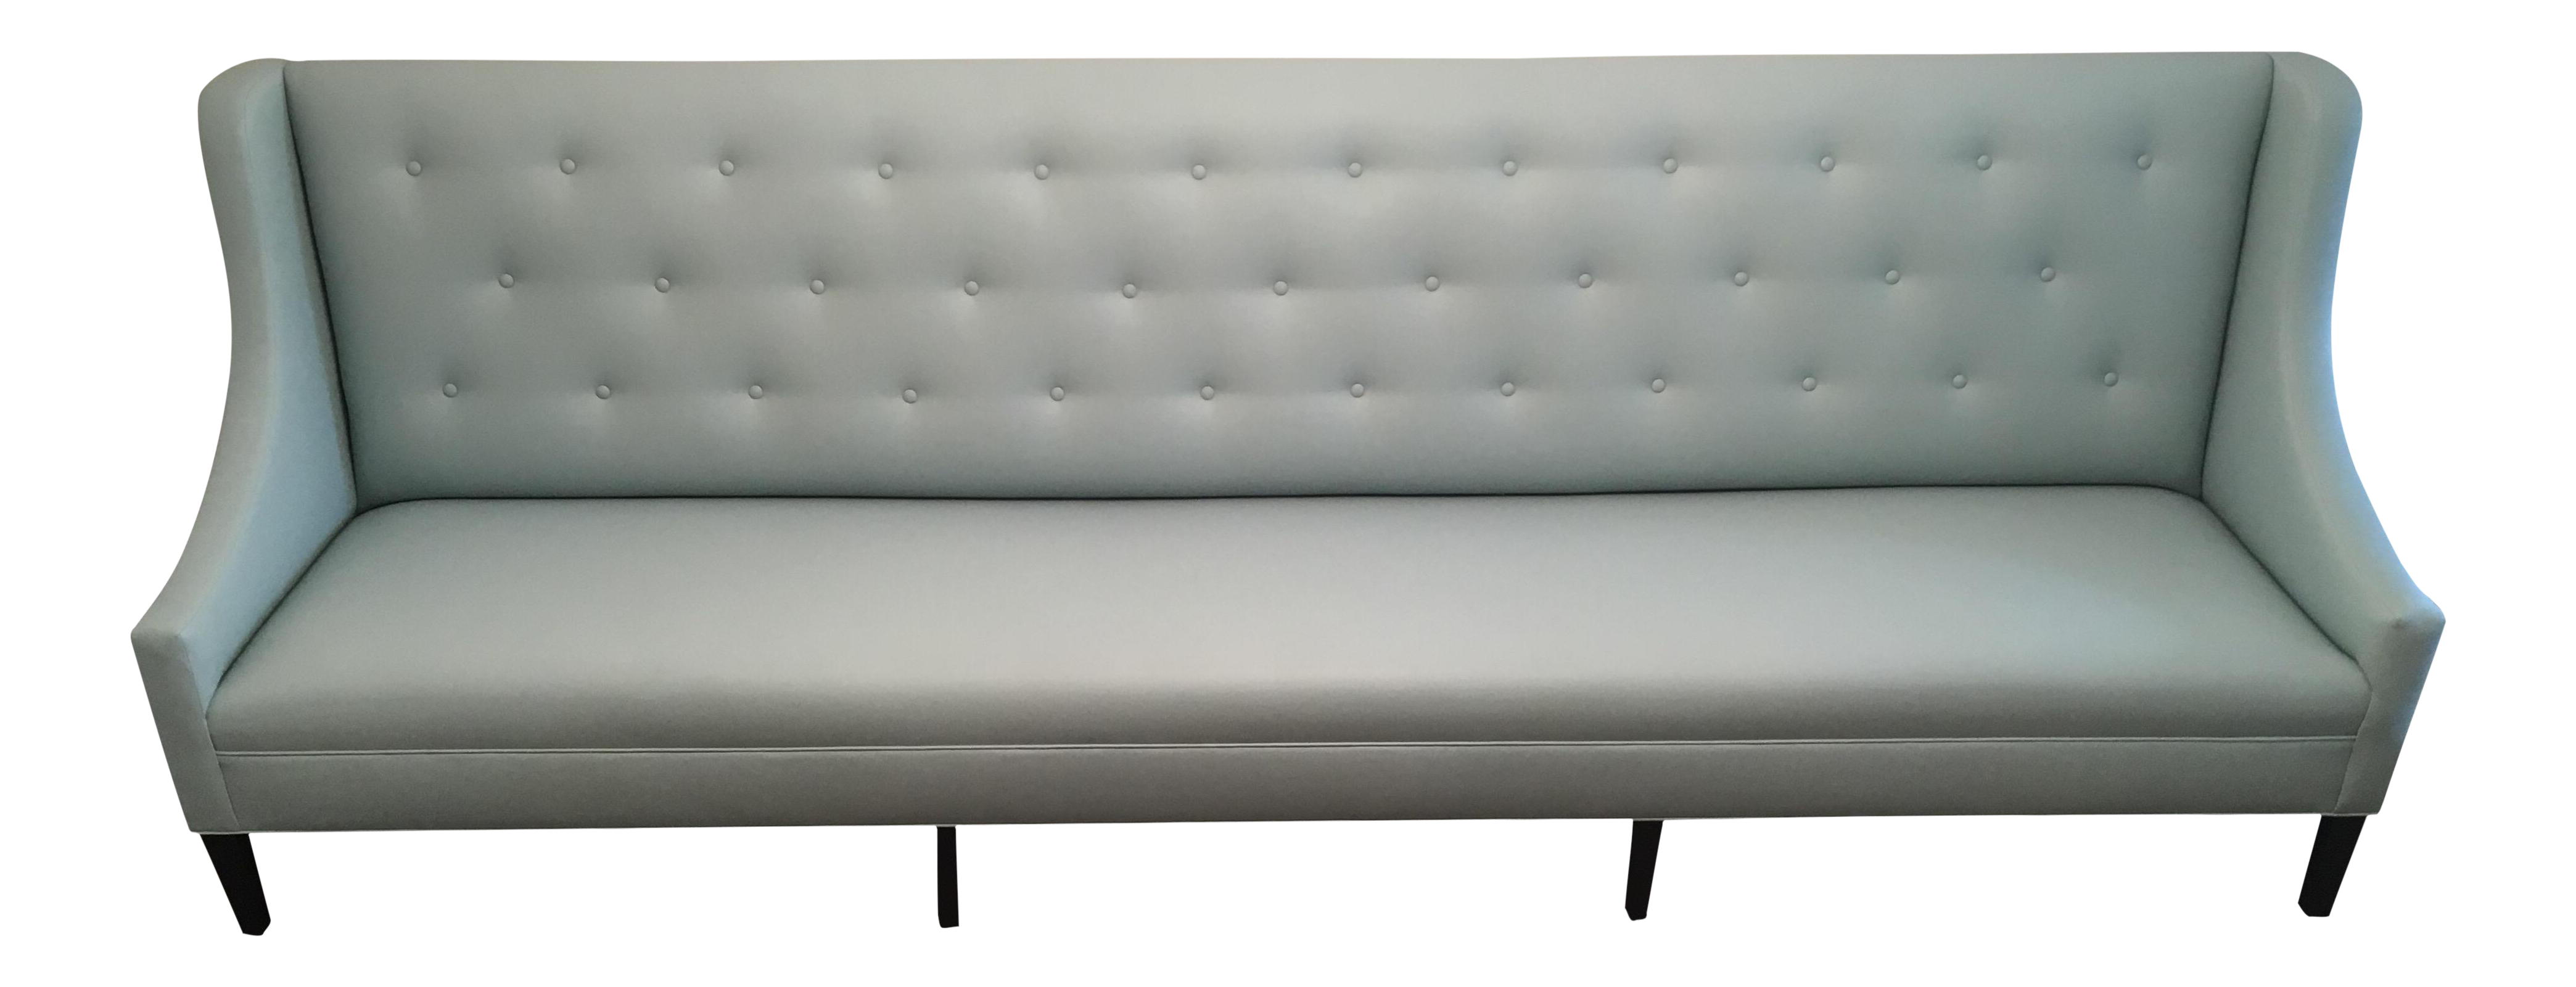 images lovely etra upholstered seating long curved bench dining banquette inspiration tables glamorous design room